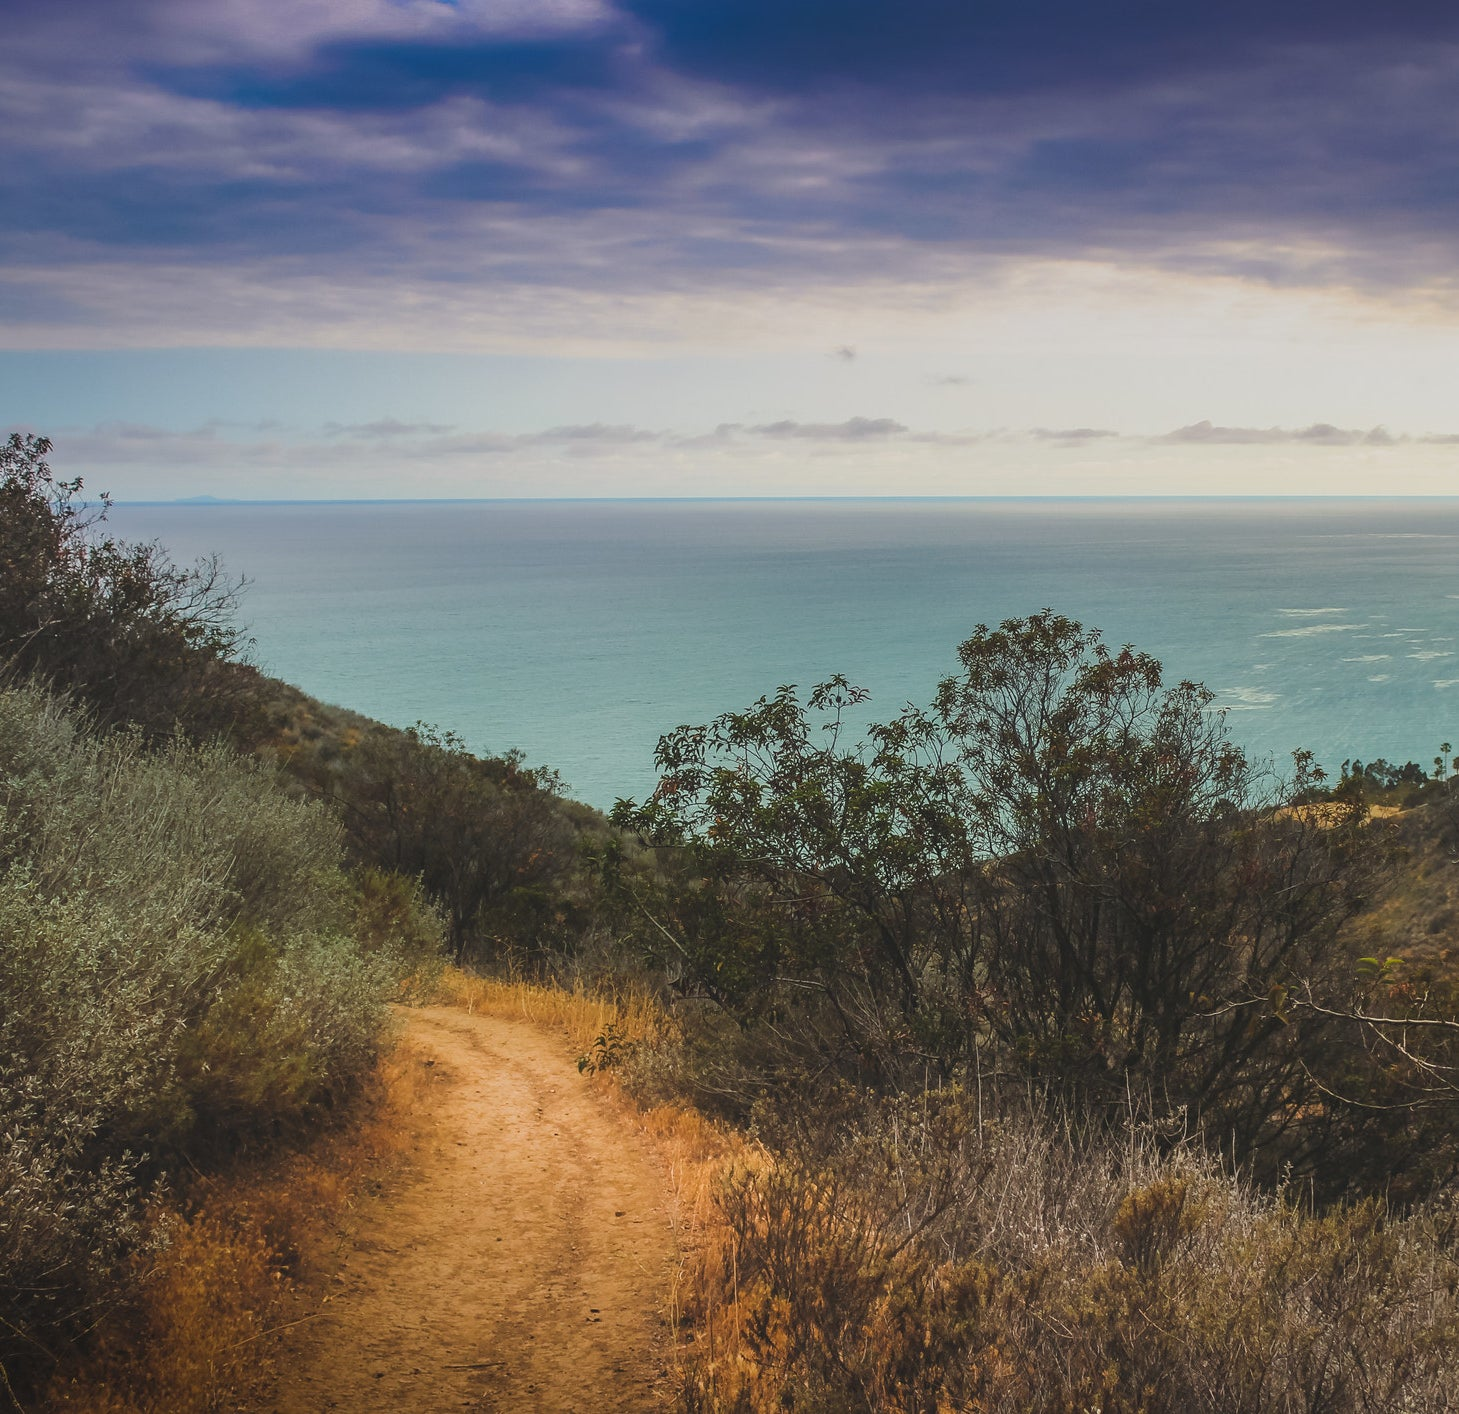 Dramatic clouds and coastline view of the Pacific Ocean from a dirt hiking trail